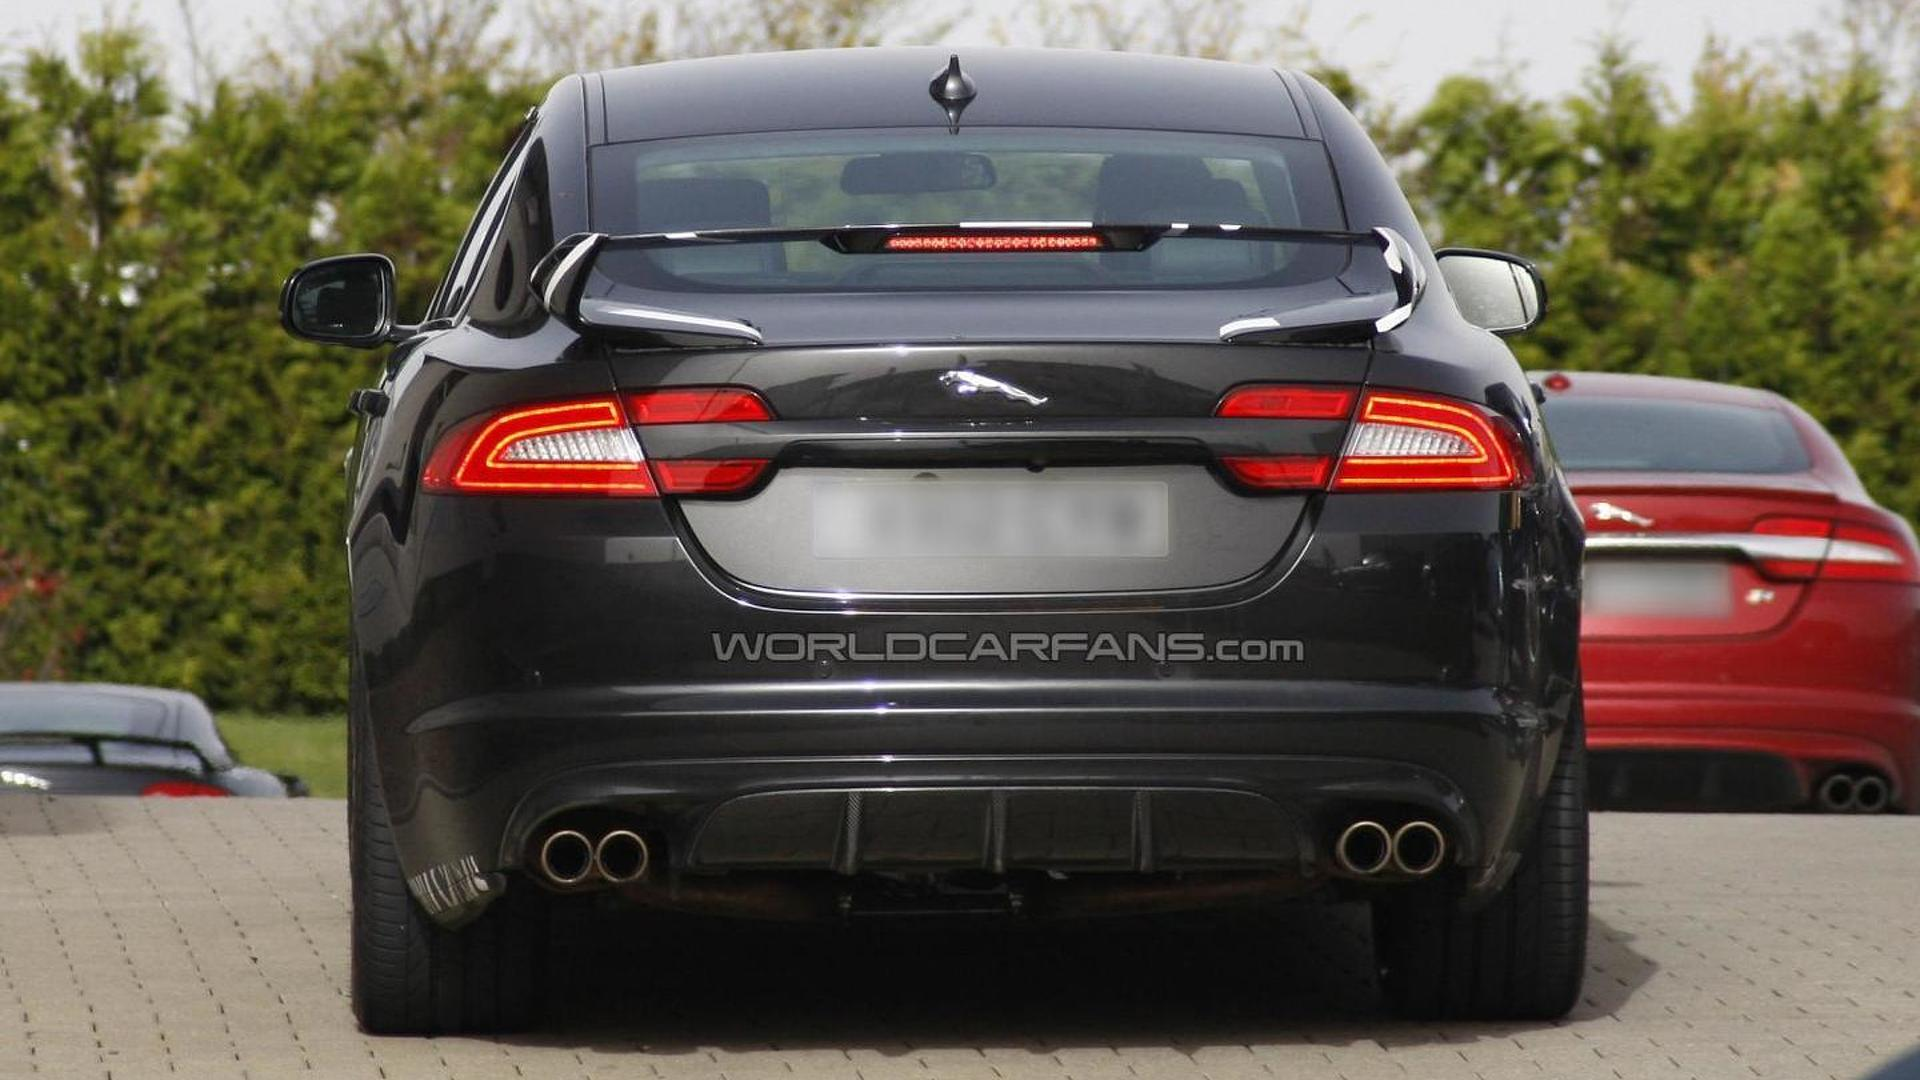 Jaguar XFR-S spied with a large rear wing